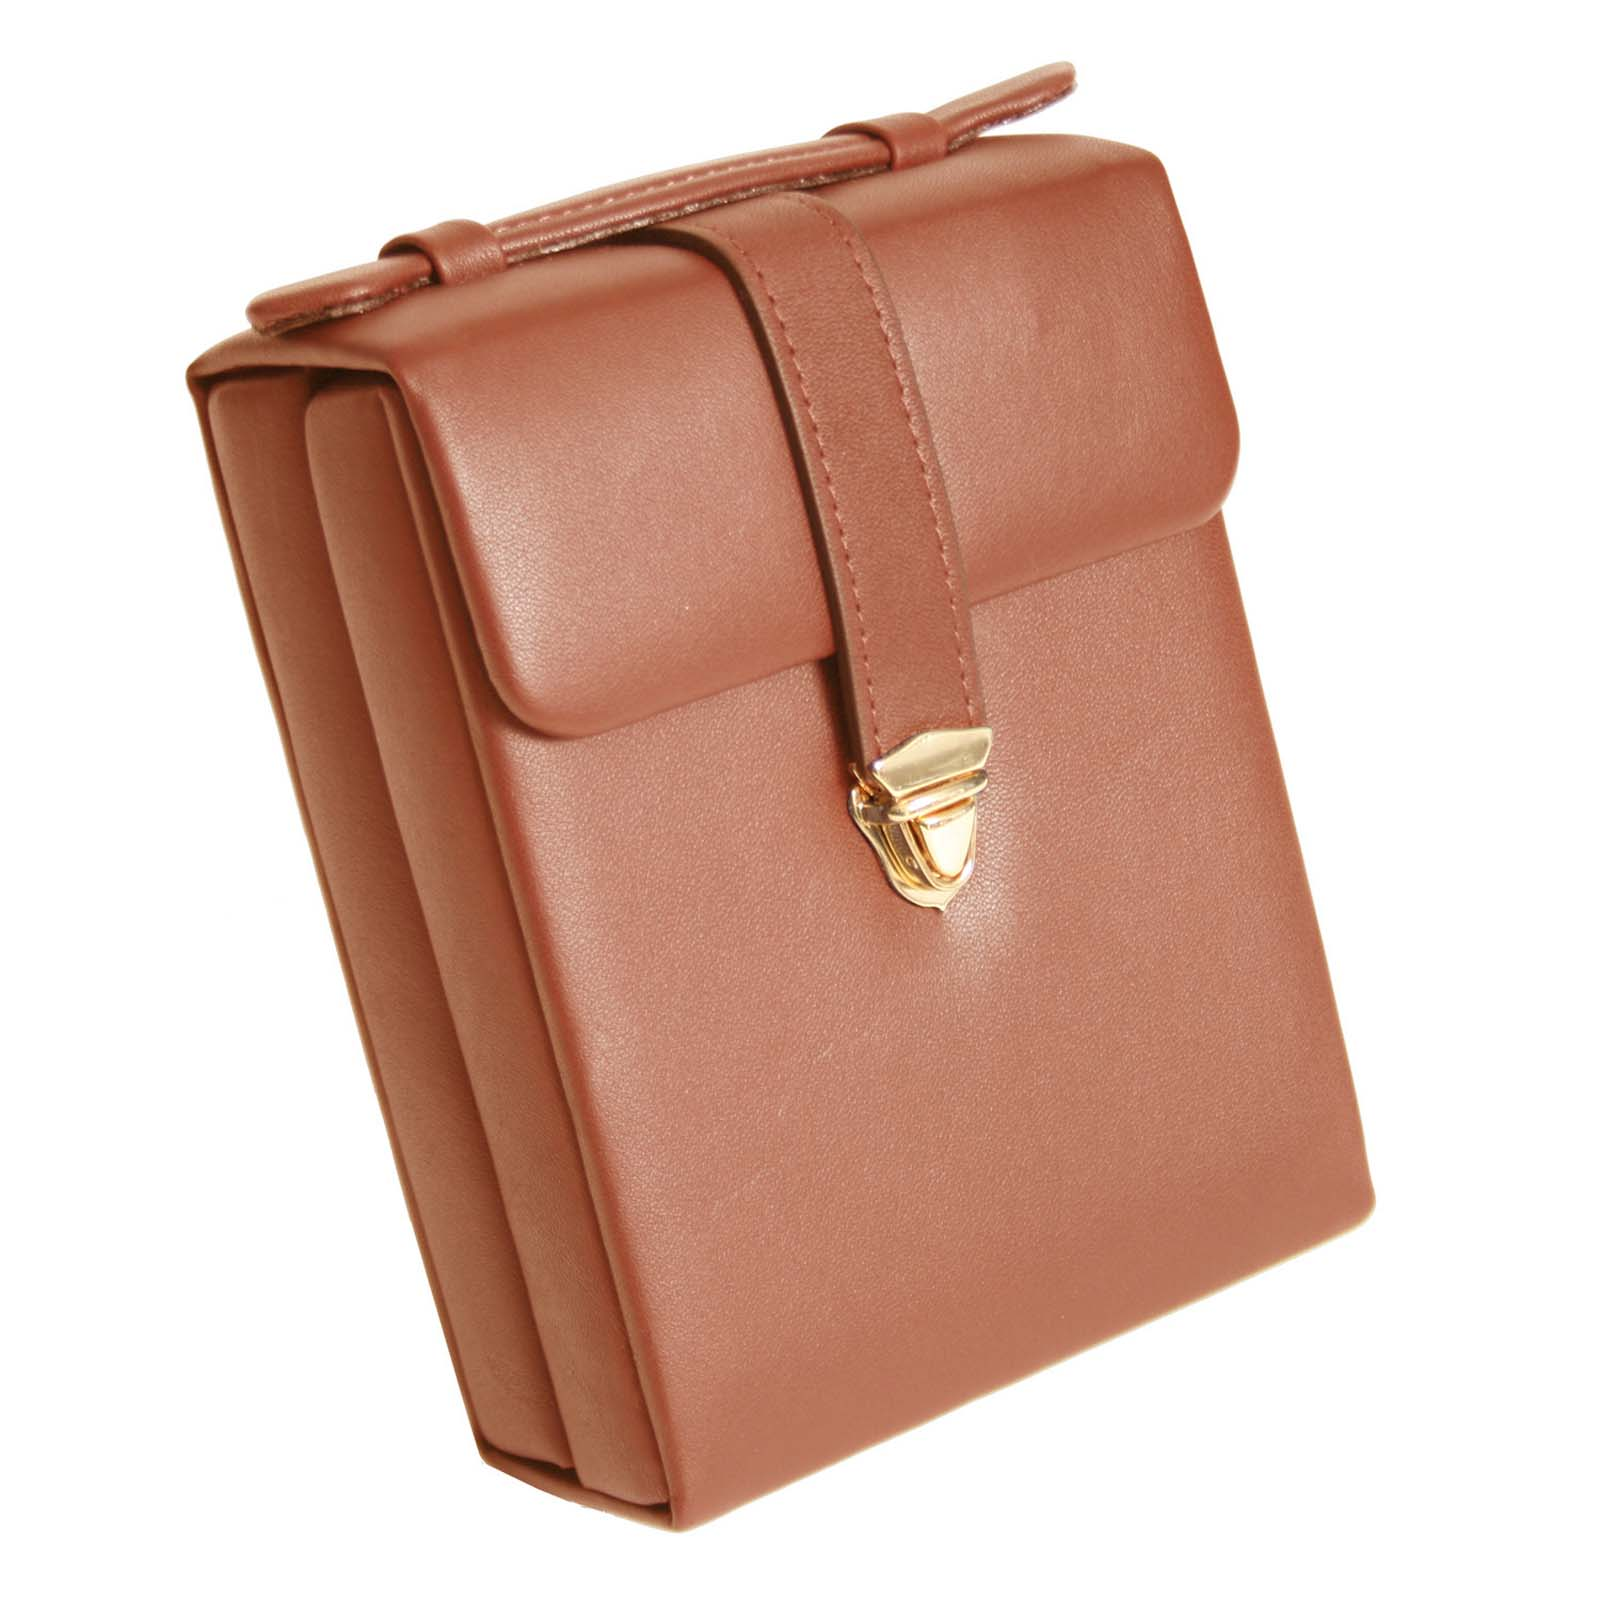 Royce Leather Travel Tan Genuine Leather Luxury Suede Lined Jewelry Case